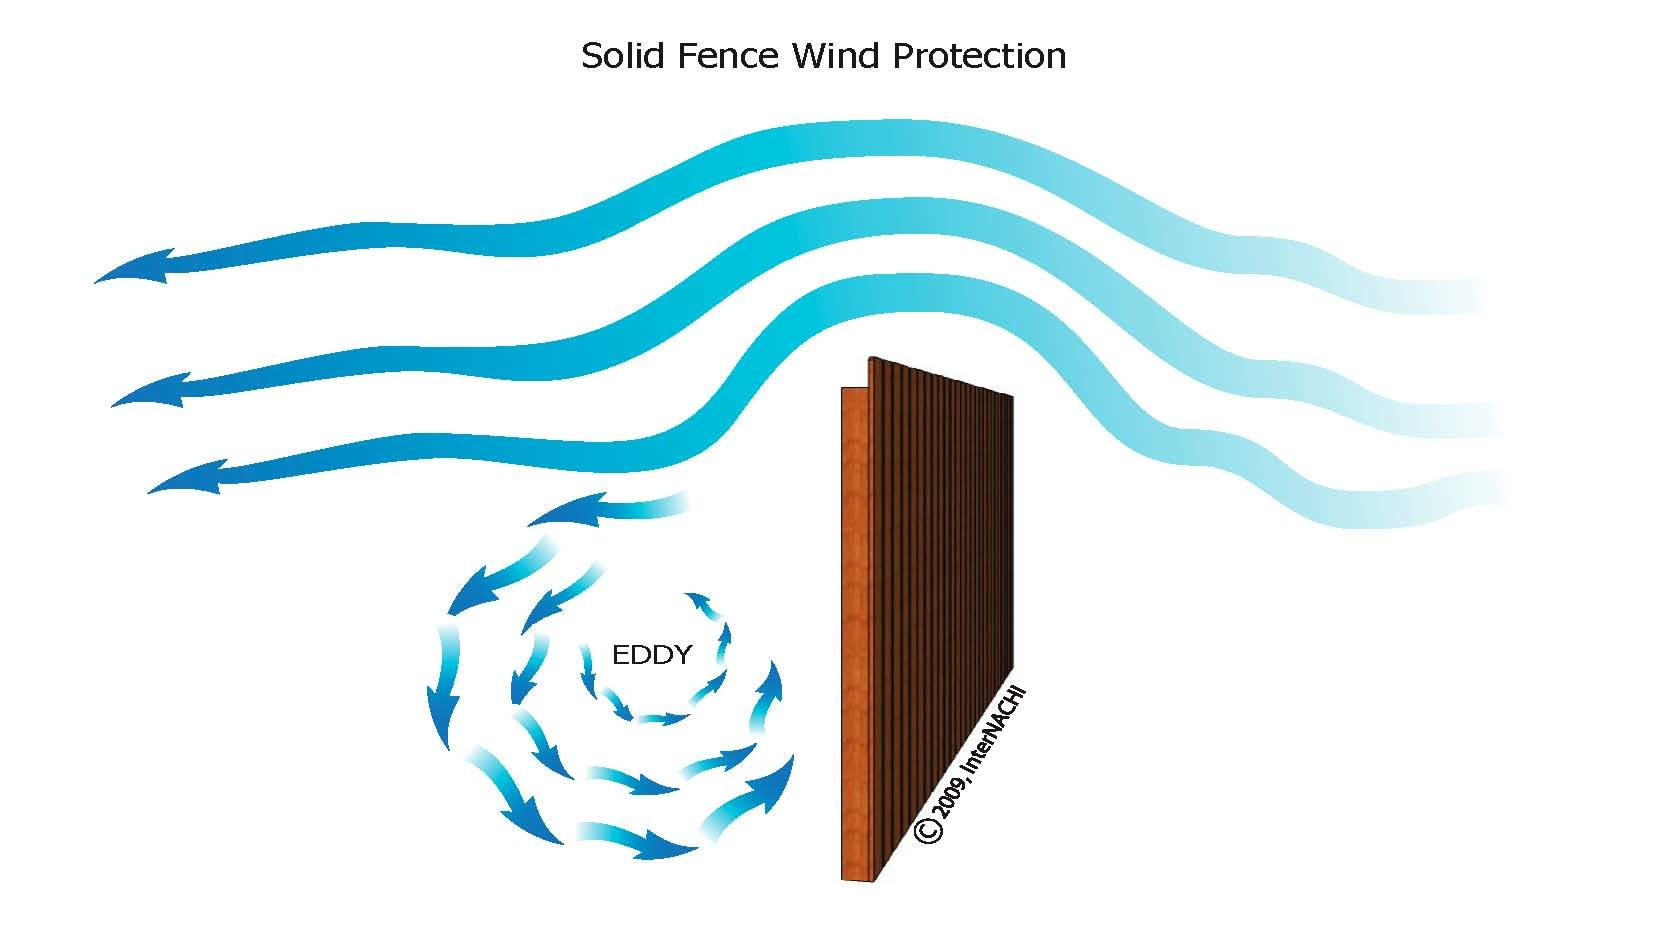 Solid fence wind protection.